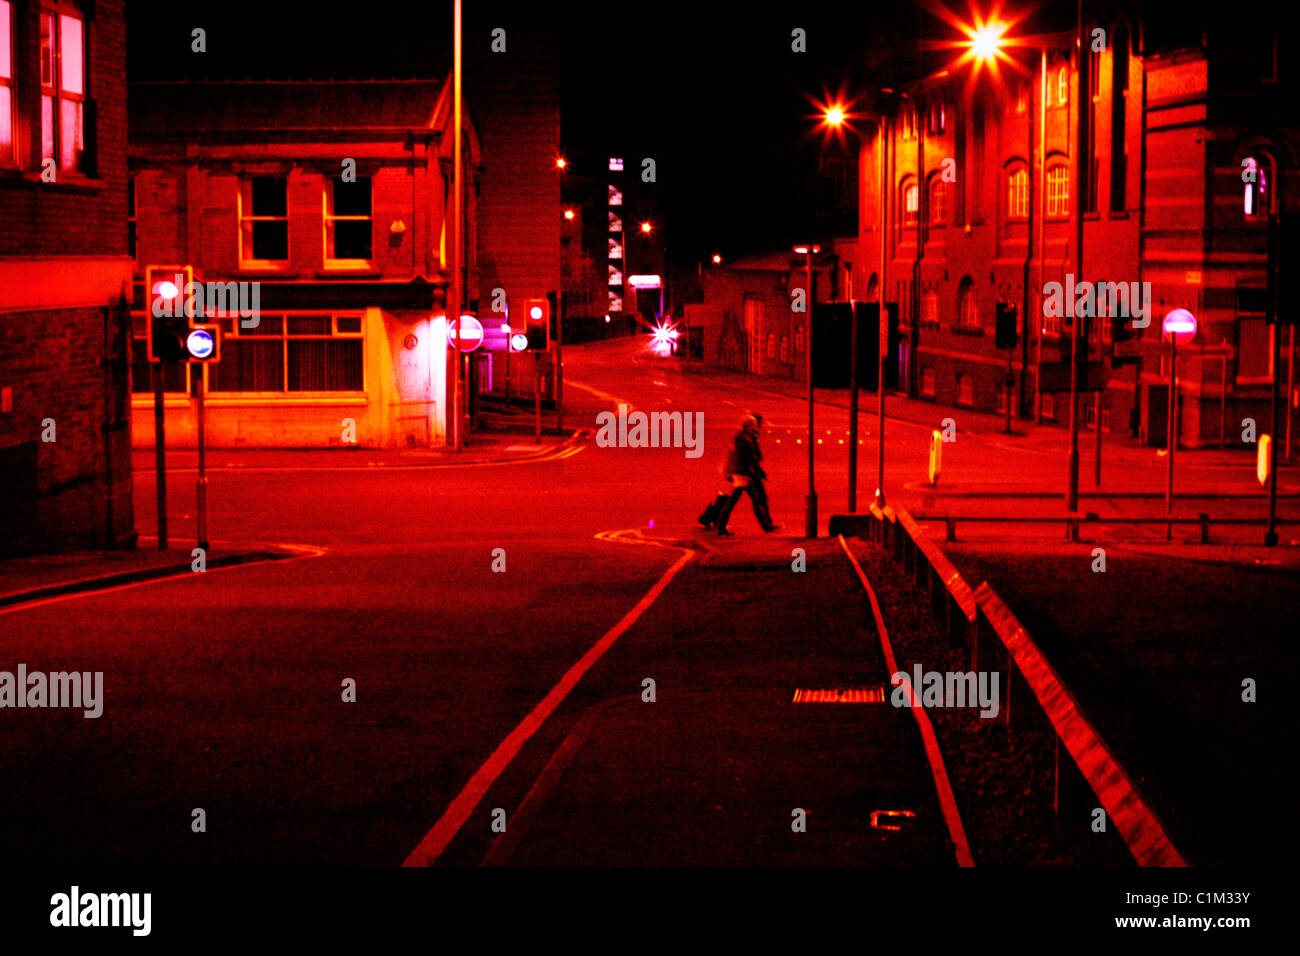 Two women walking alone at night in city - Stock Image